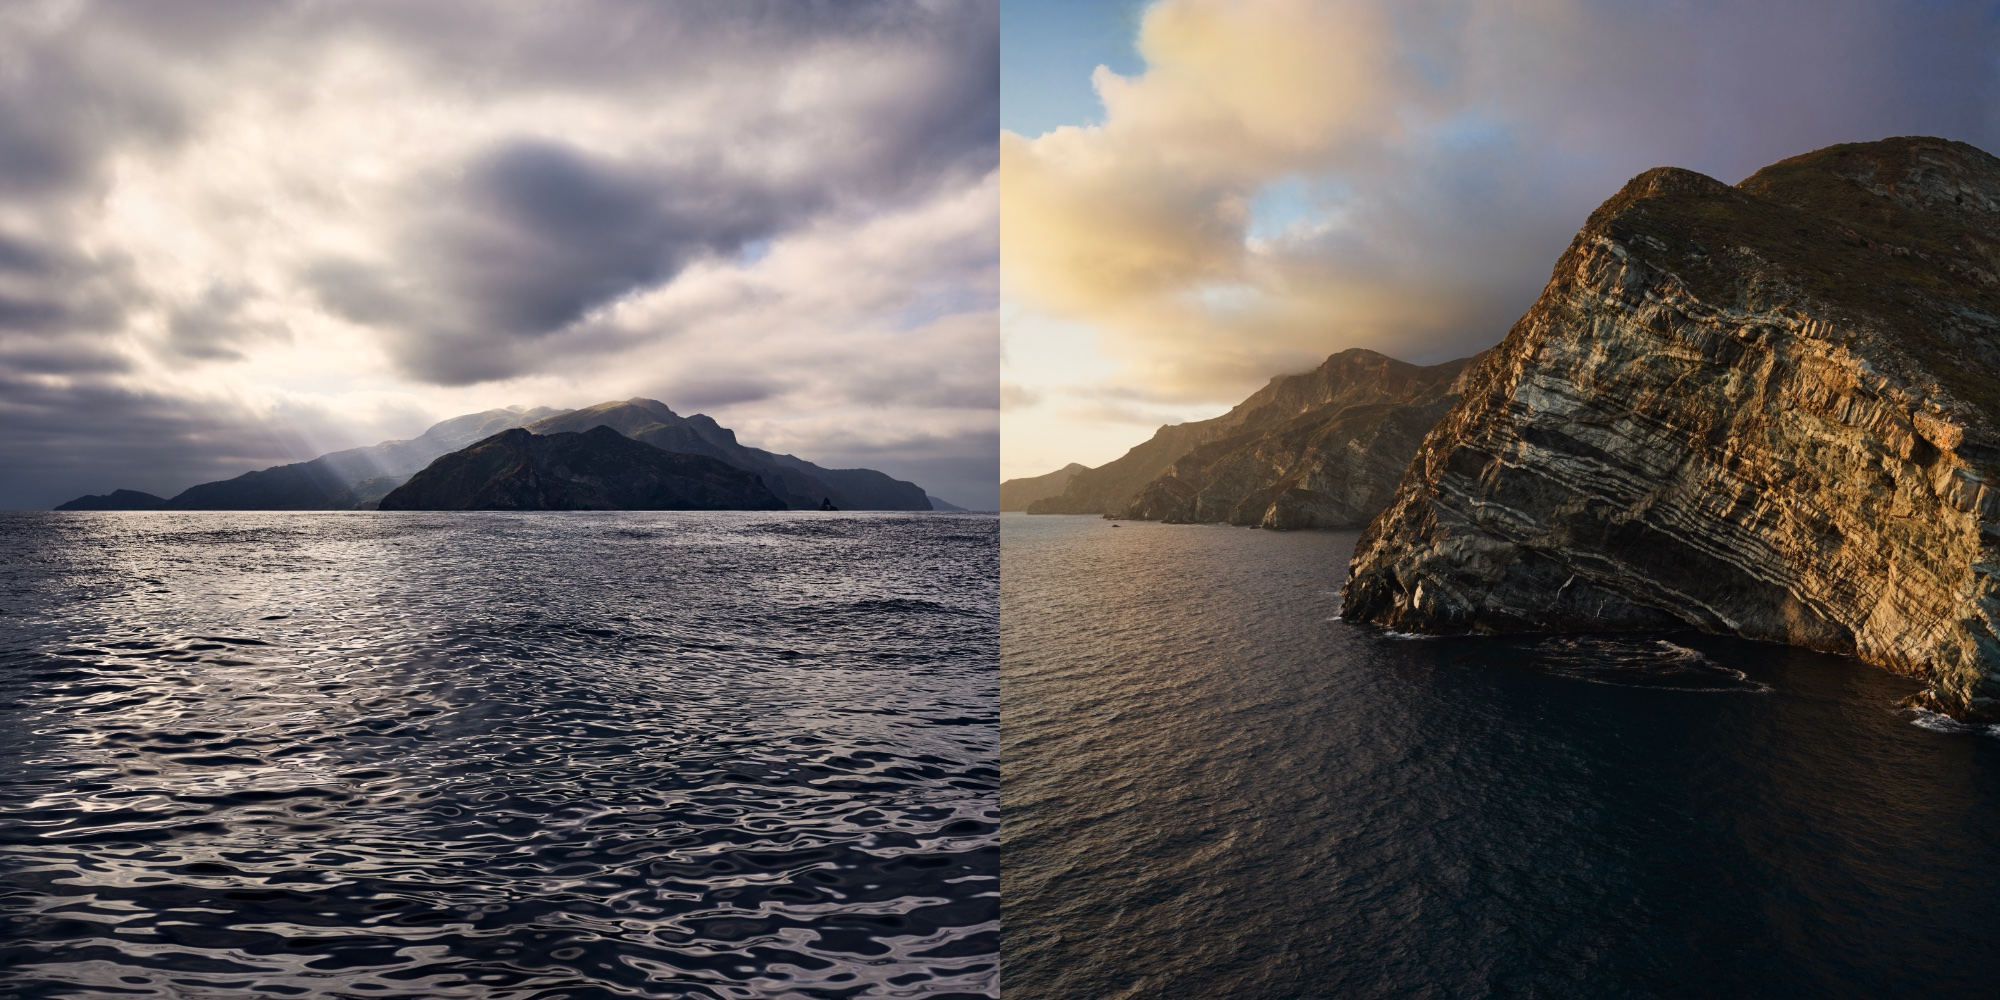 Download 7 New Beautiful Catalina Desktop Wallpapers For Macos 10 15 9to5mac